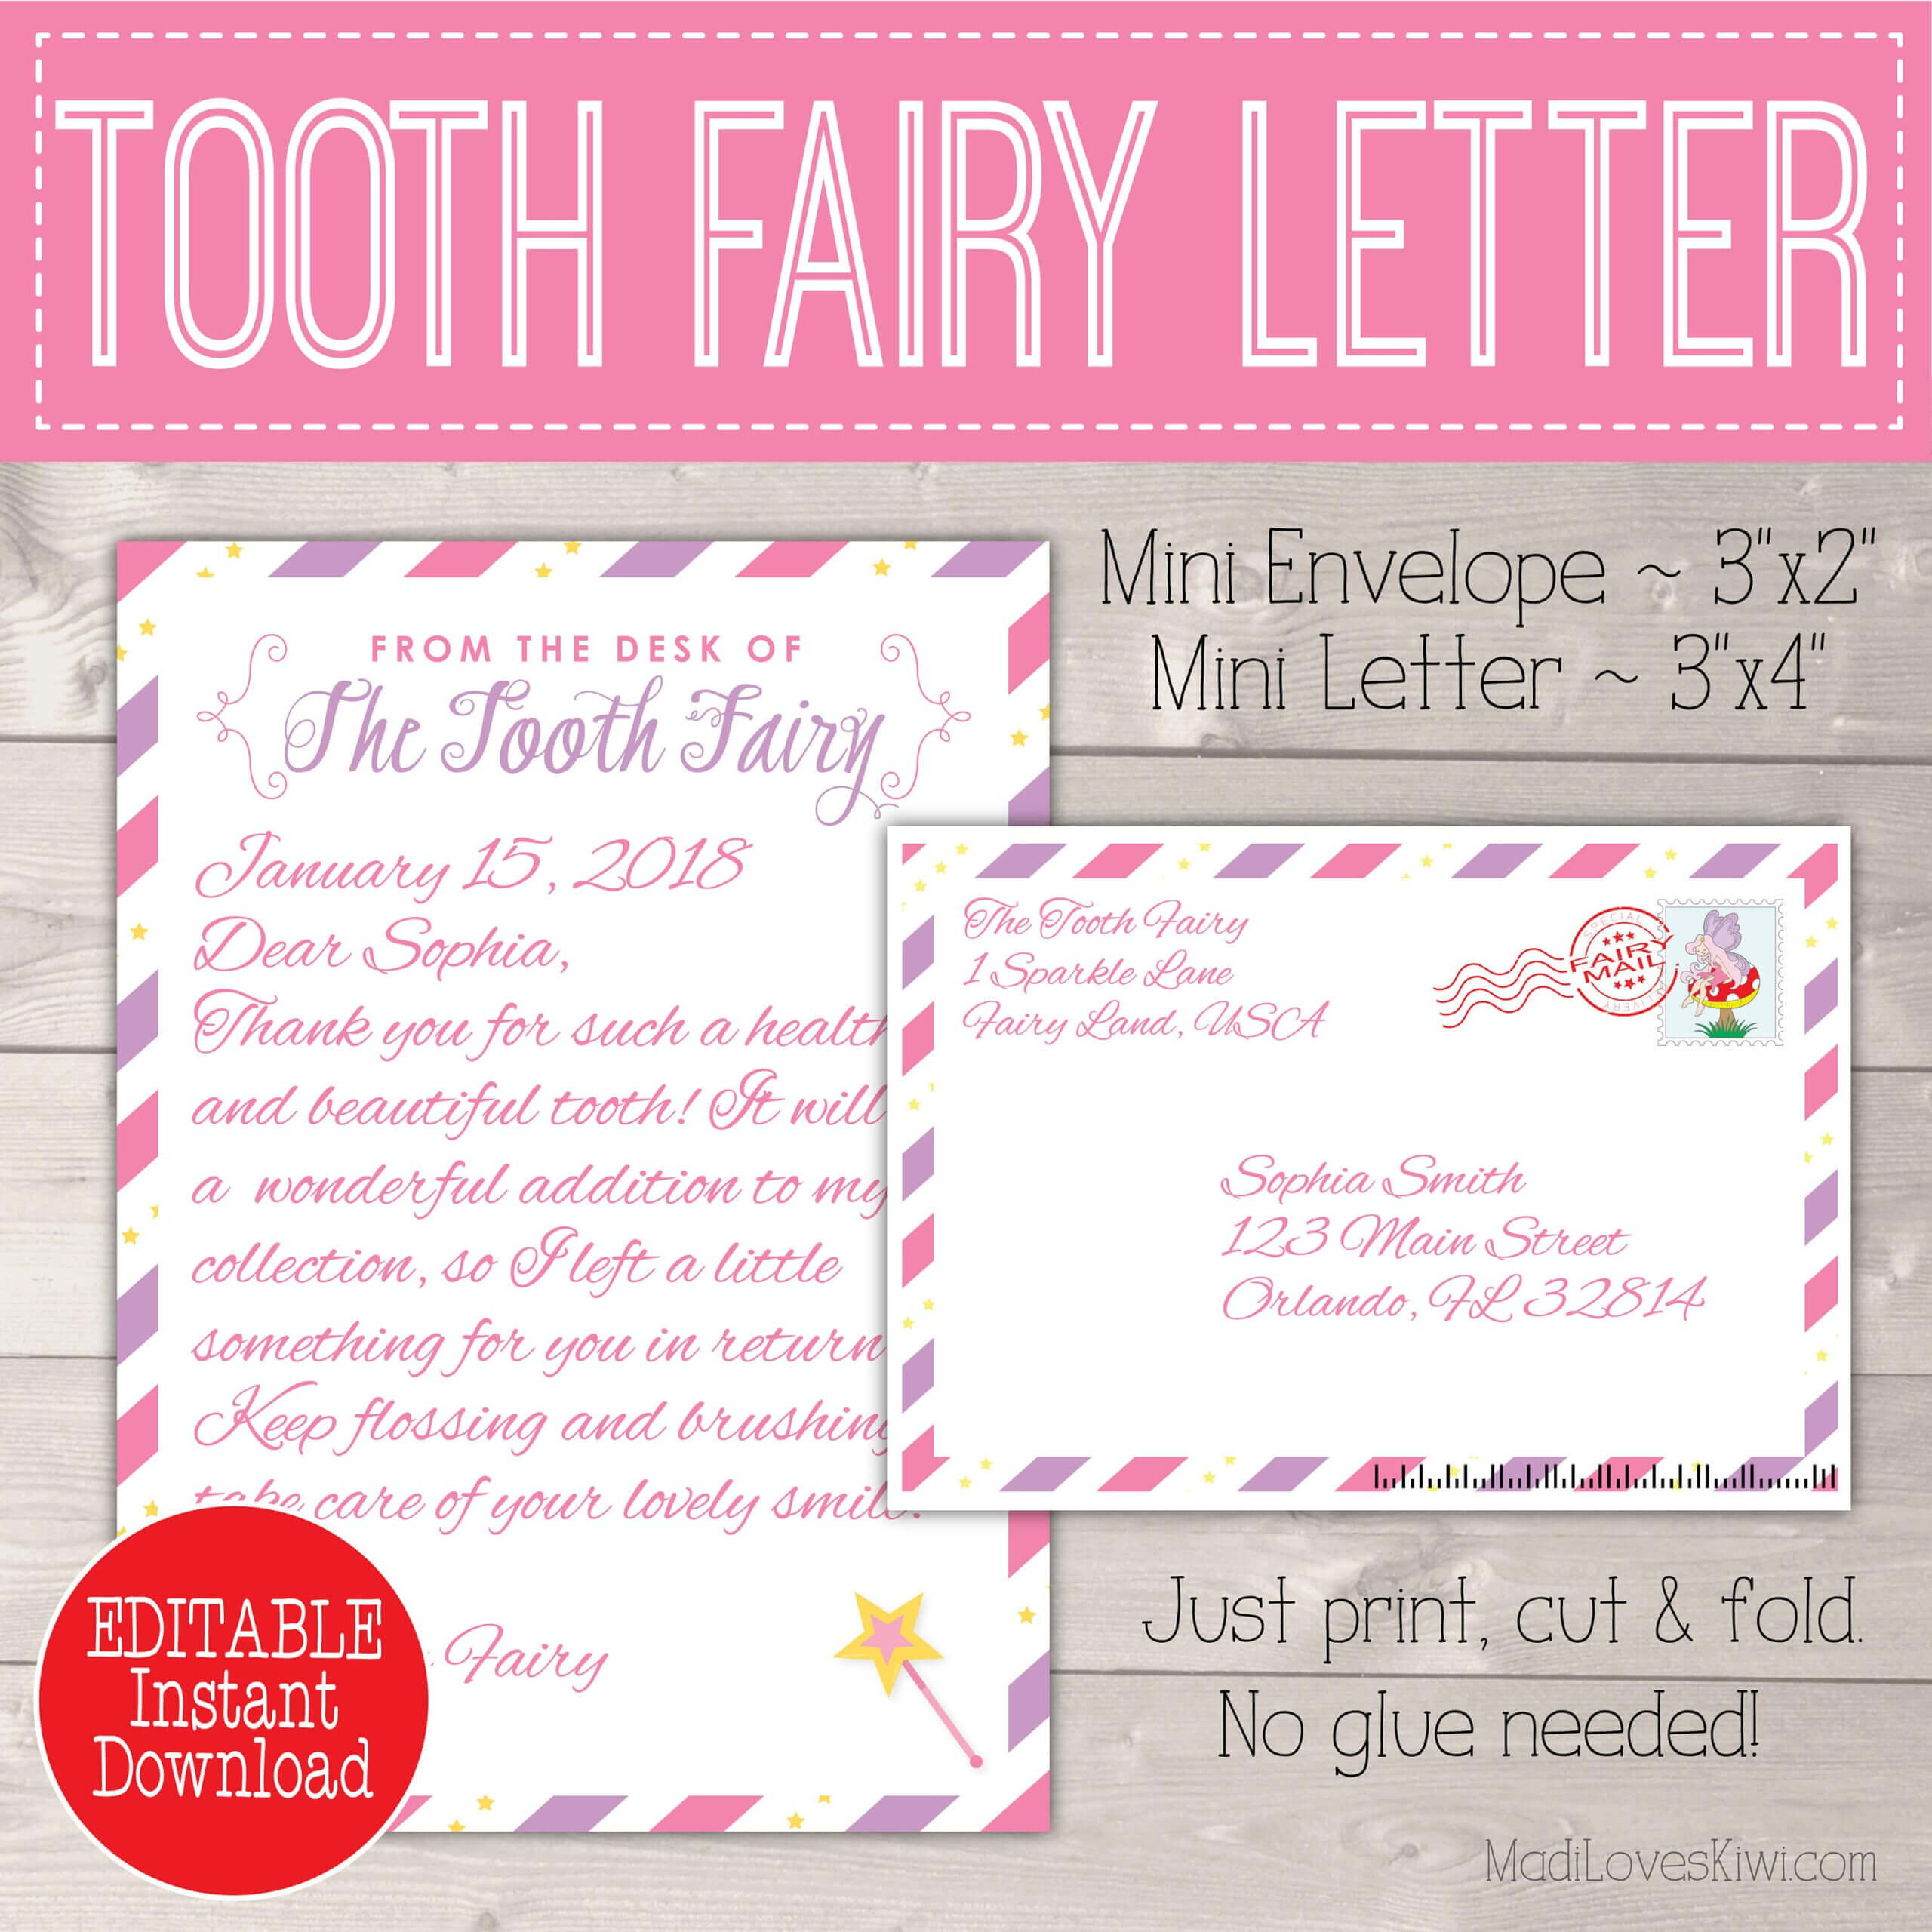 Editable Tooth Fairy Letter With Envelope | Printable Pink With Tooth Fairy Certificate Template Free